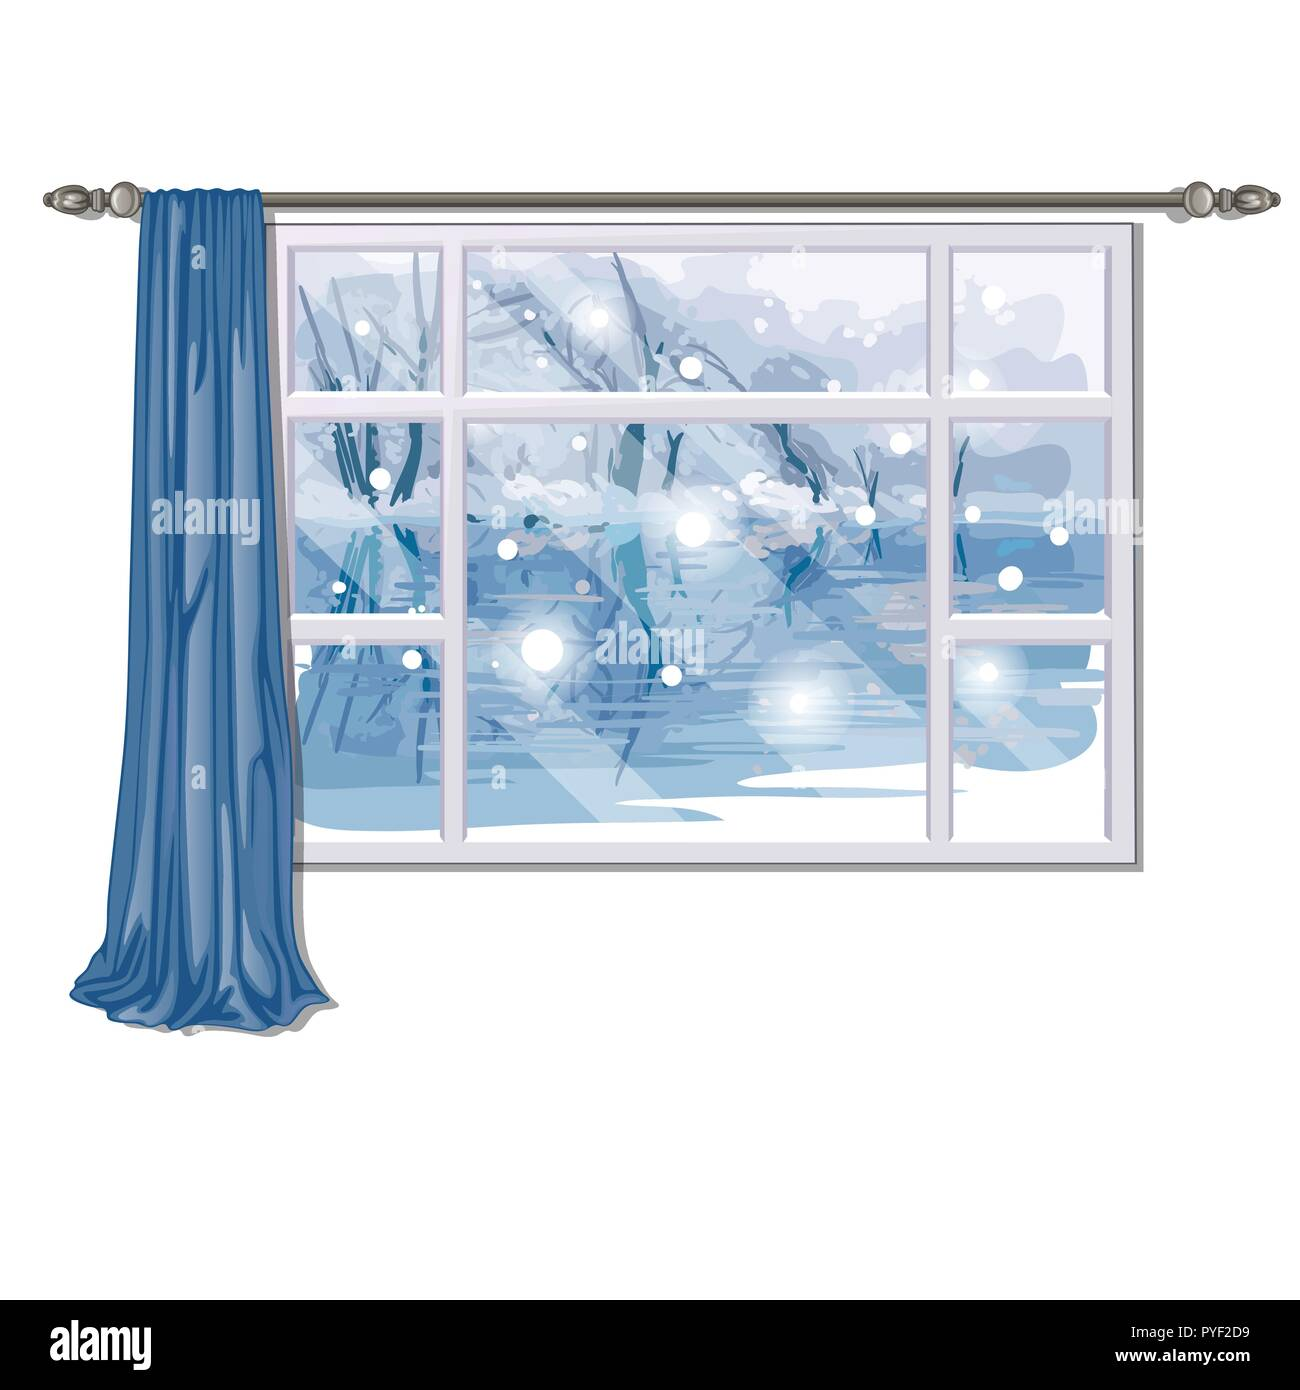 The window overlooking the forest river in winter isolated on white background. Interior design luxury country house. Vector illustration. - Stock Image